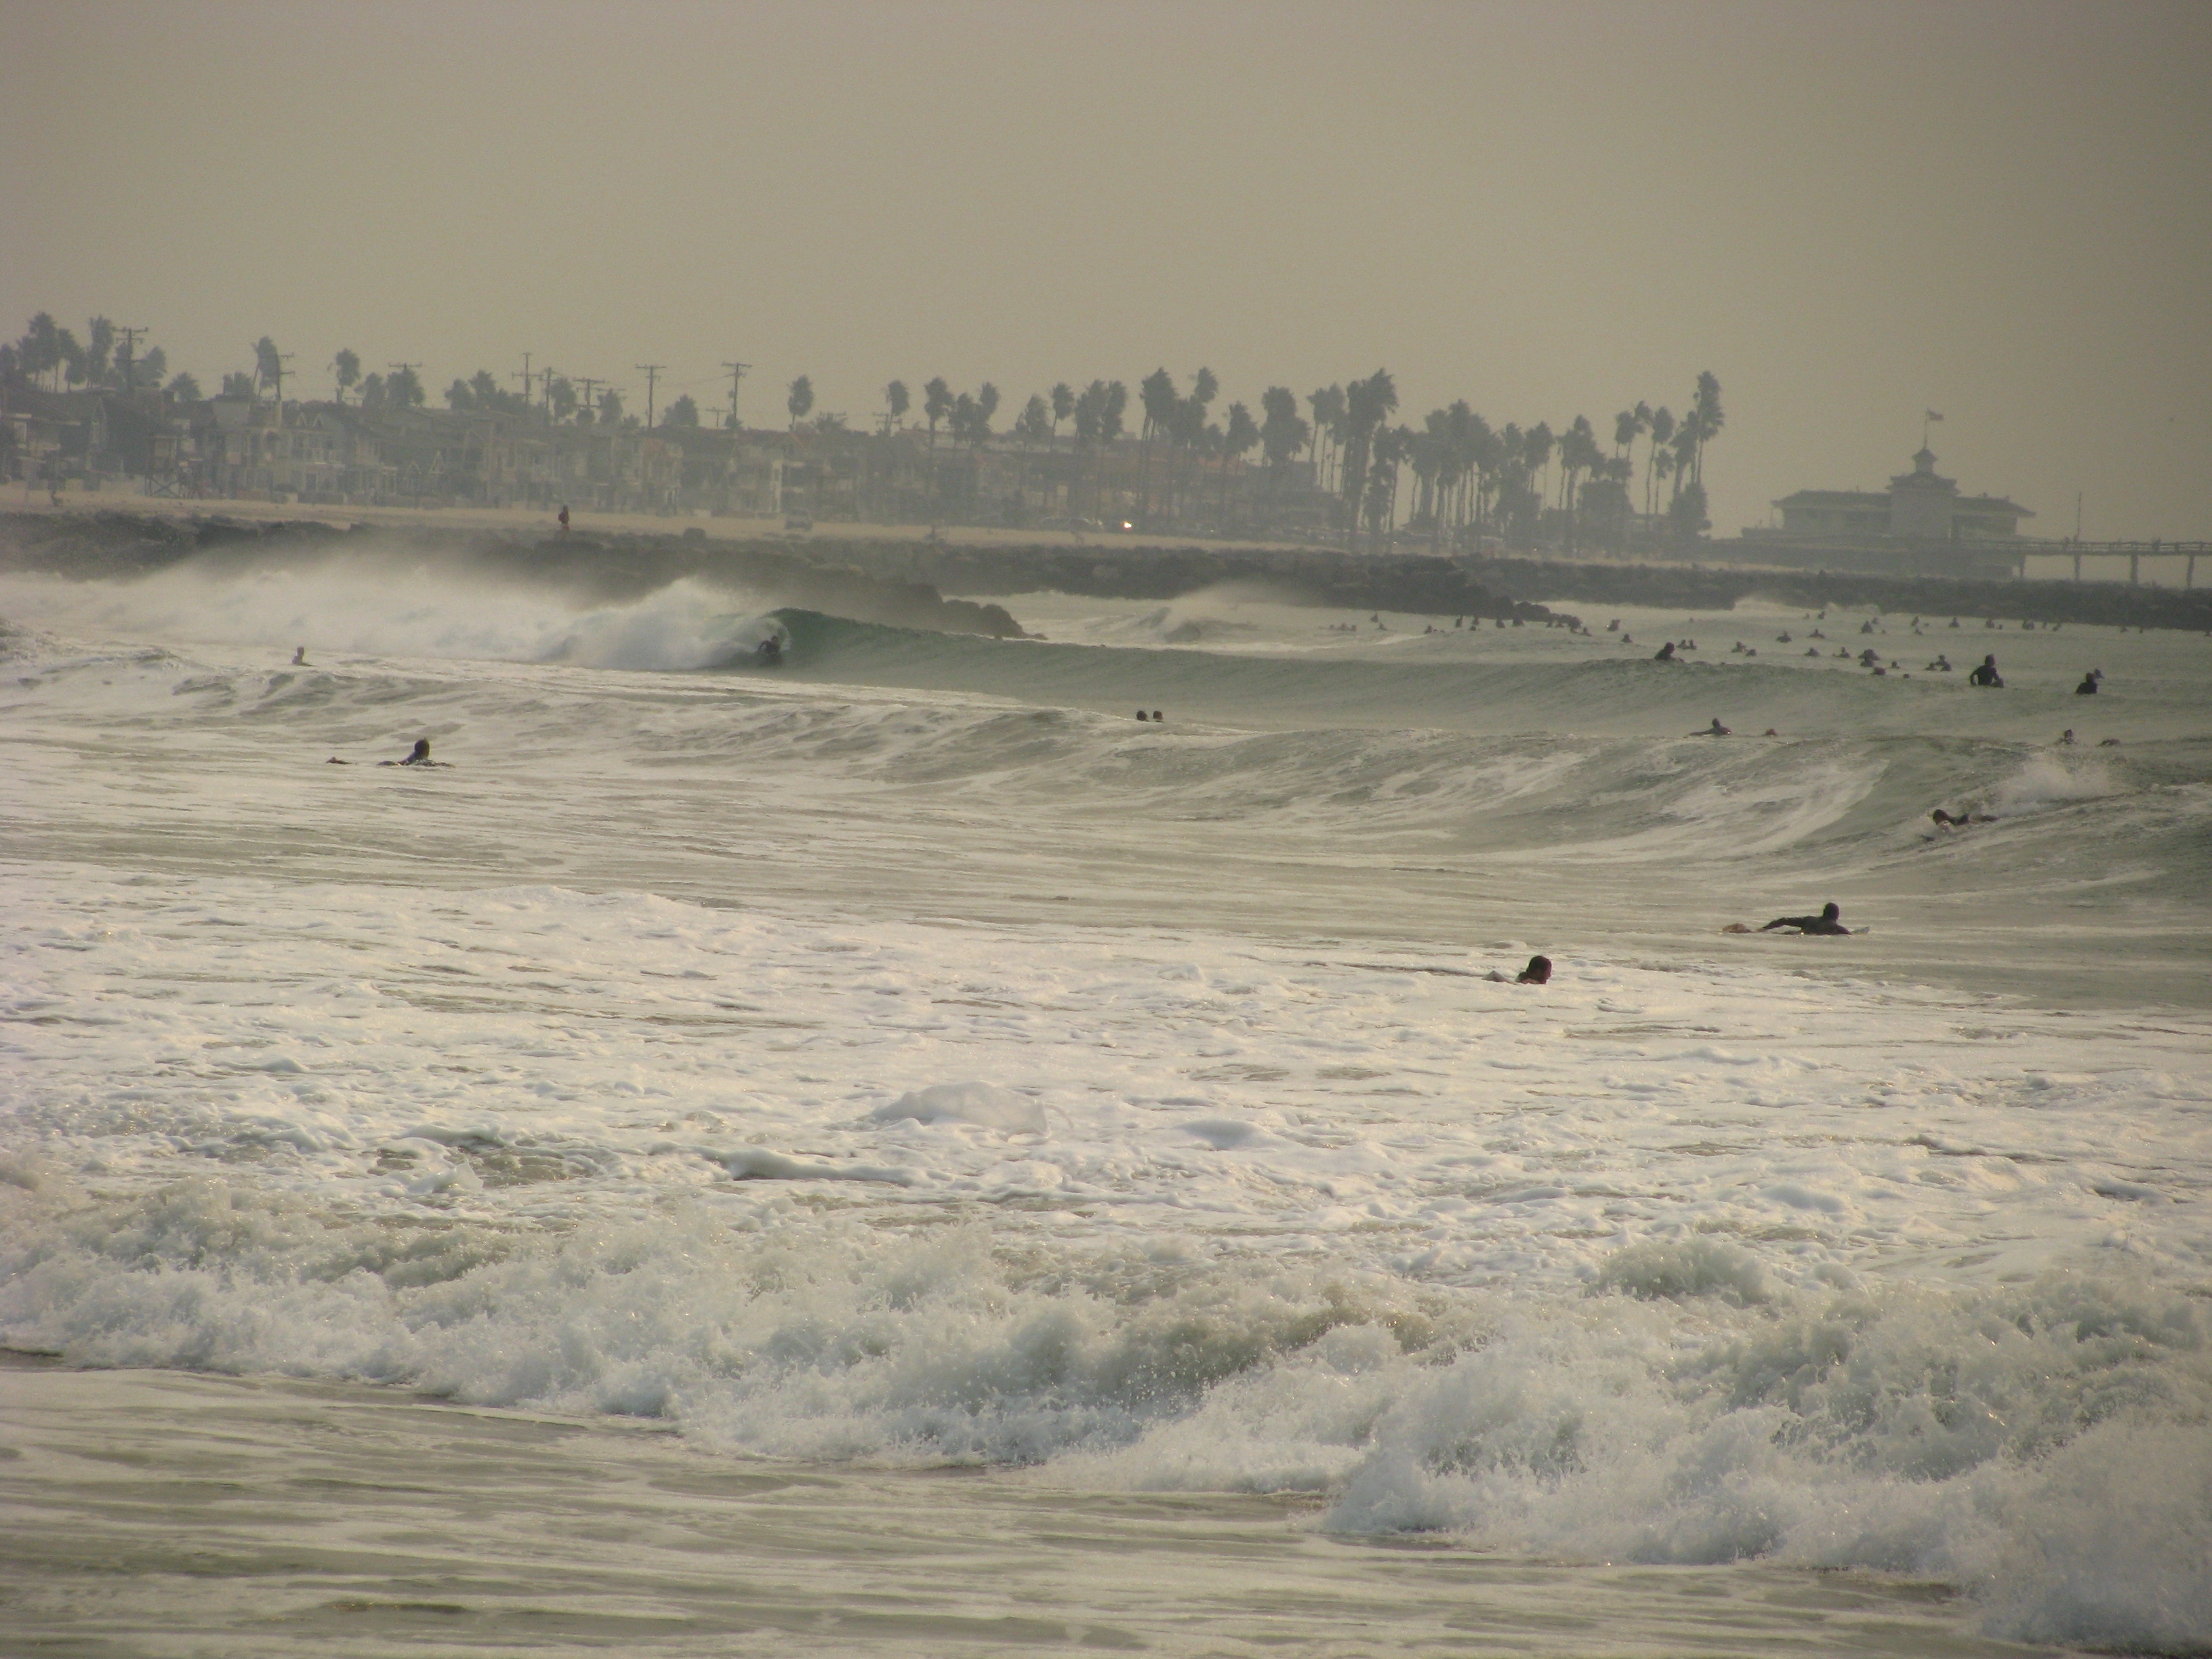 Newport Jetties break up the swell and the crowds.